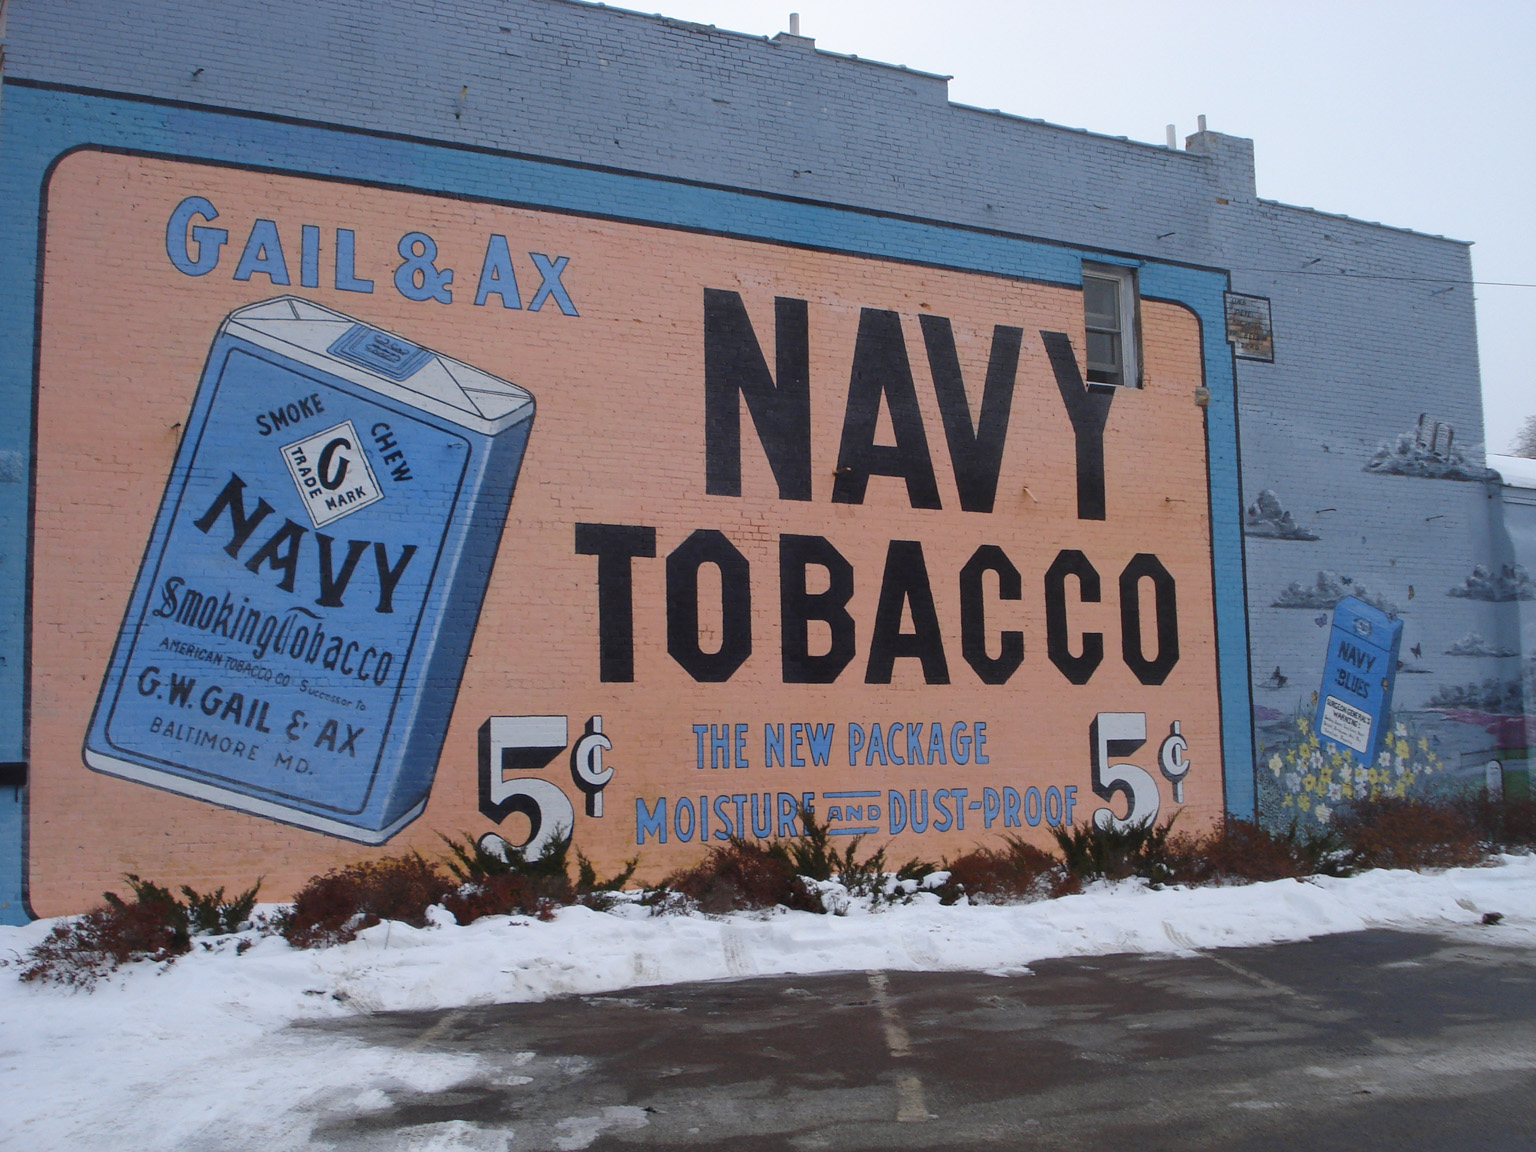 Gail & Ax Tobacco Mural, Little Falls, Minnesota. Photo by Alice Smuda, January 2008.